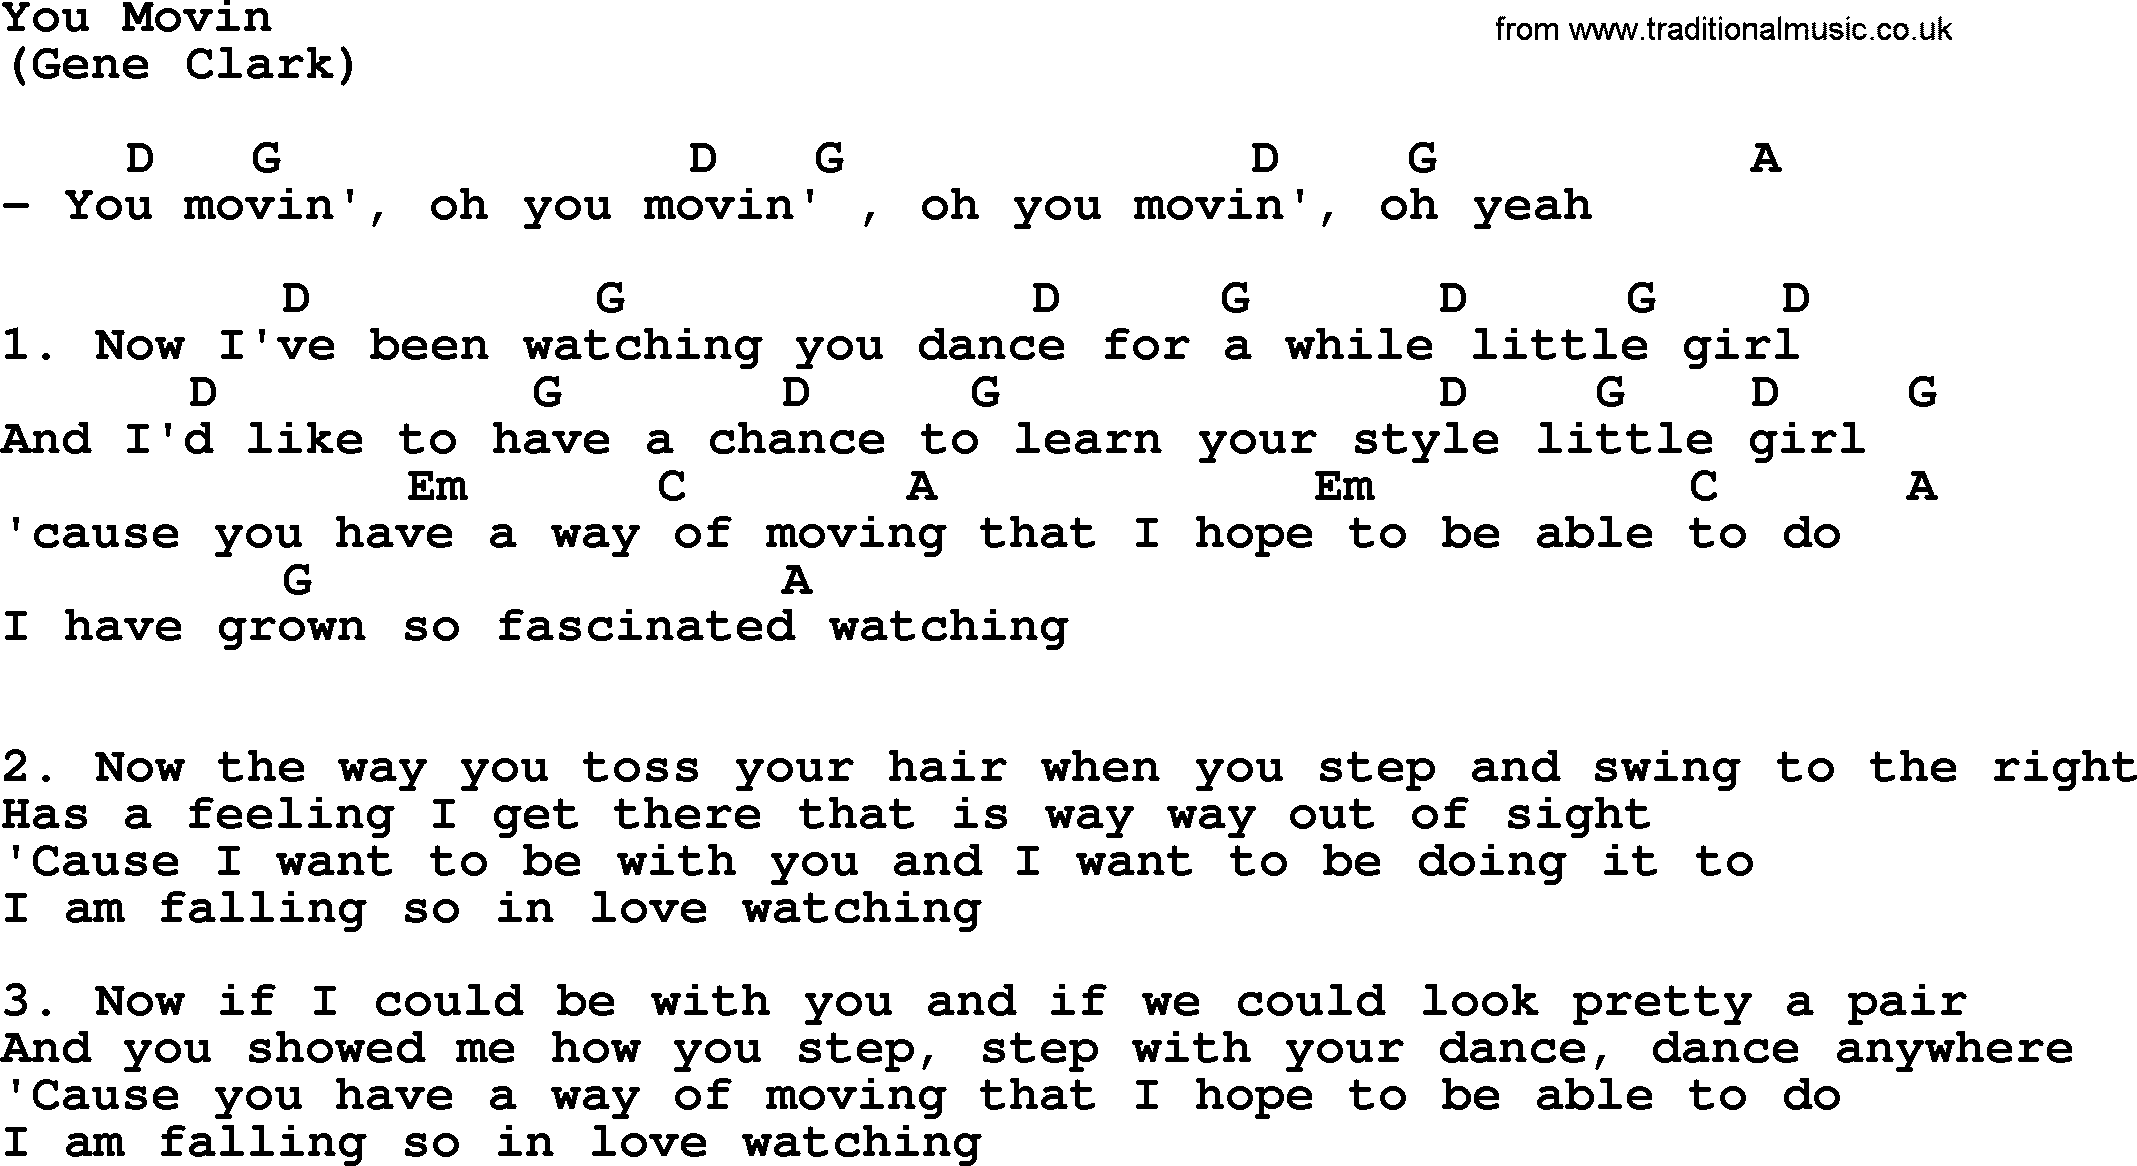 You Movin By The Byrds Lyrics And Chords